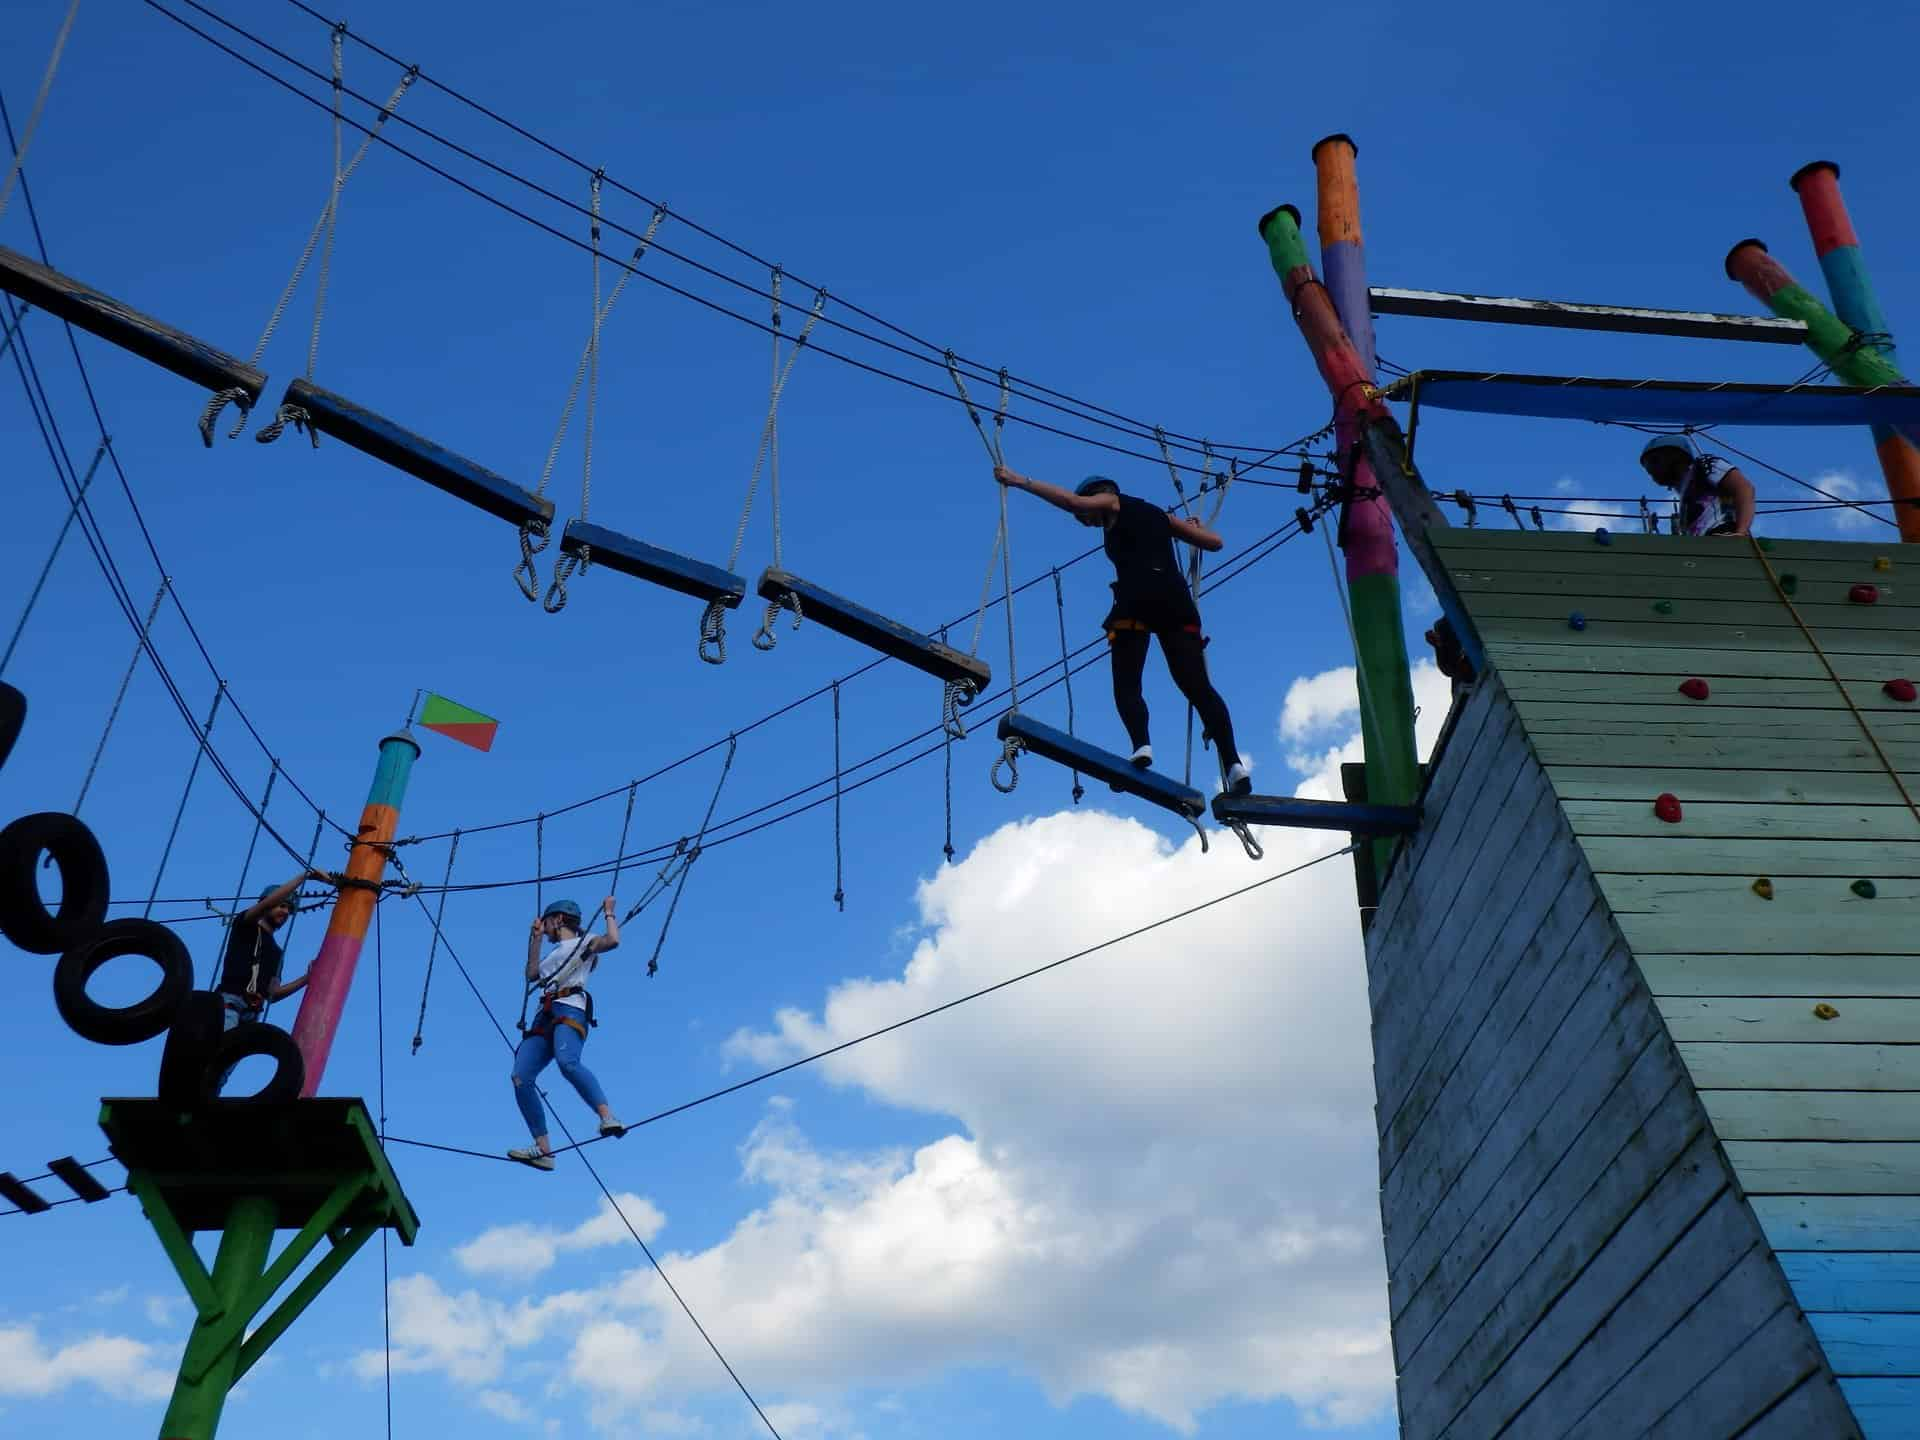 People are seen going through a wire attraction, while being strapped on